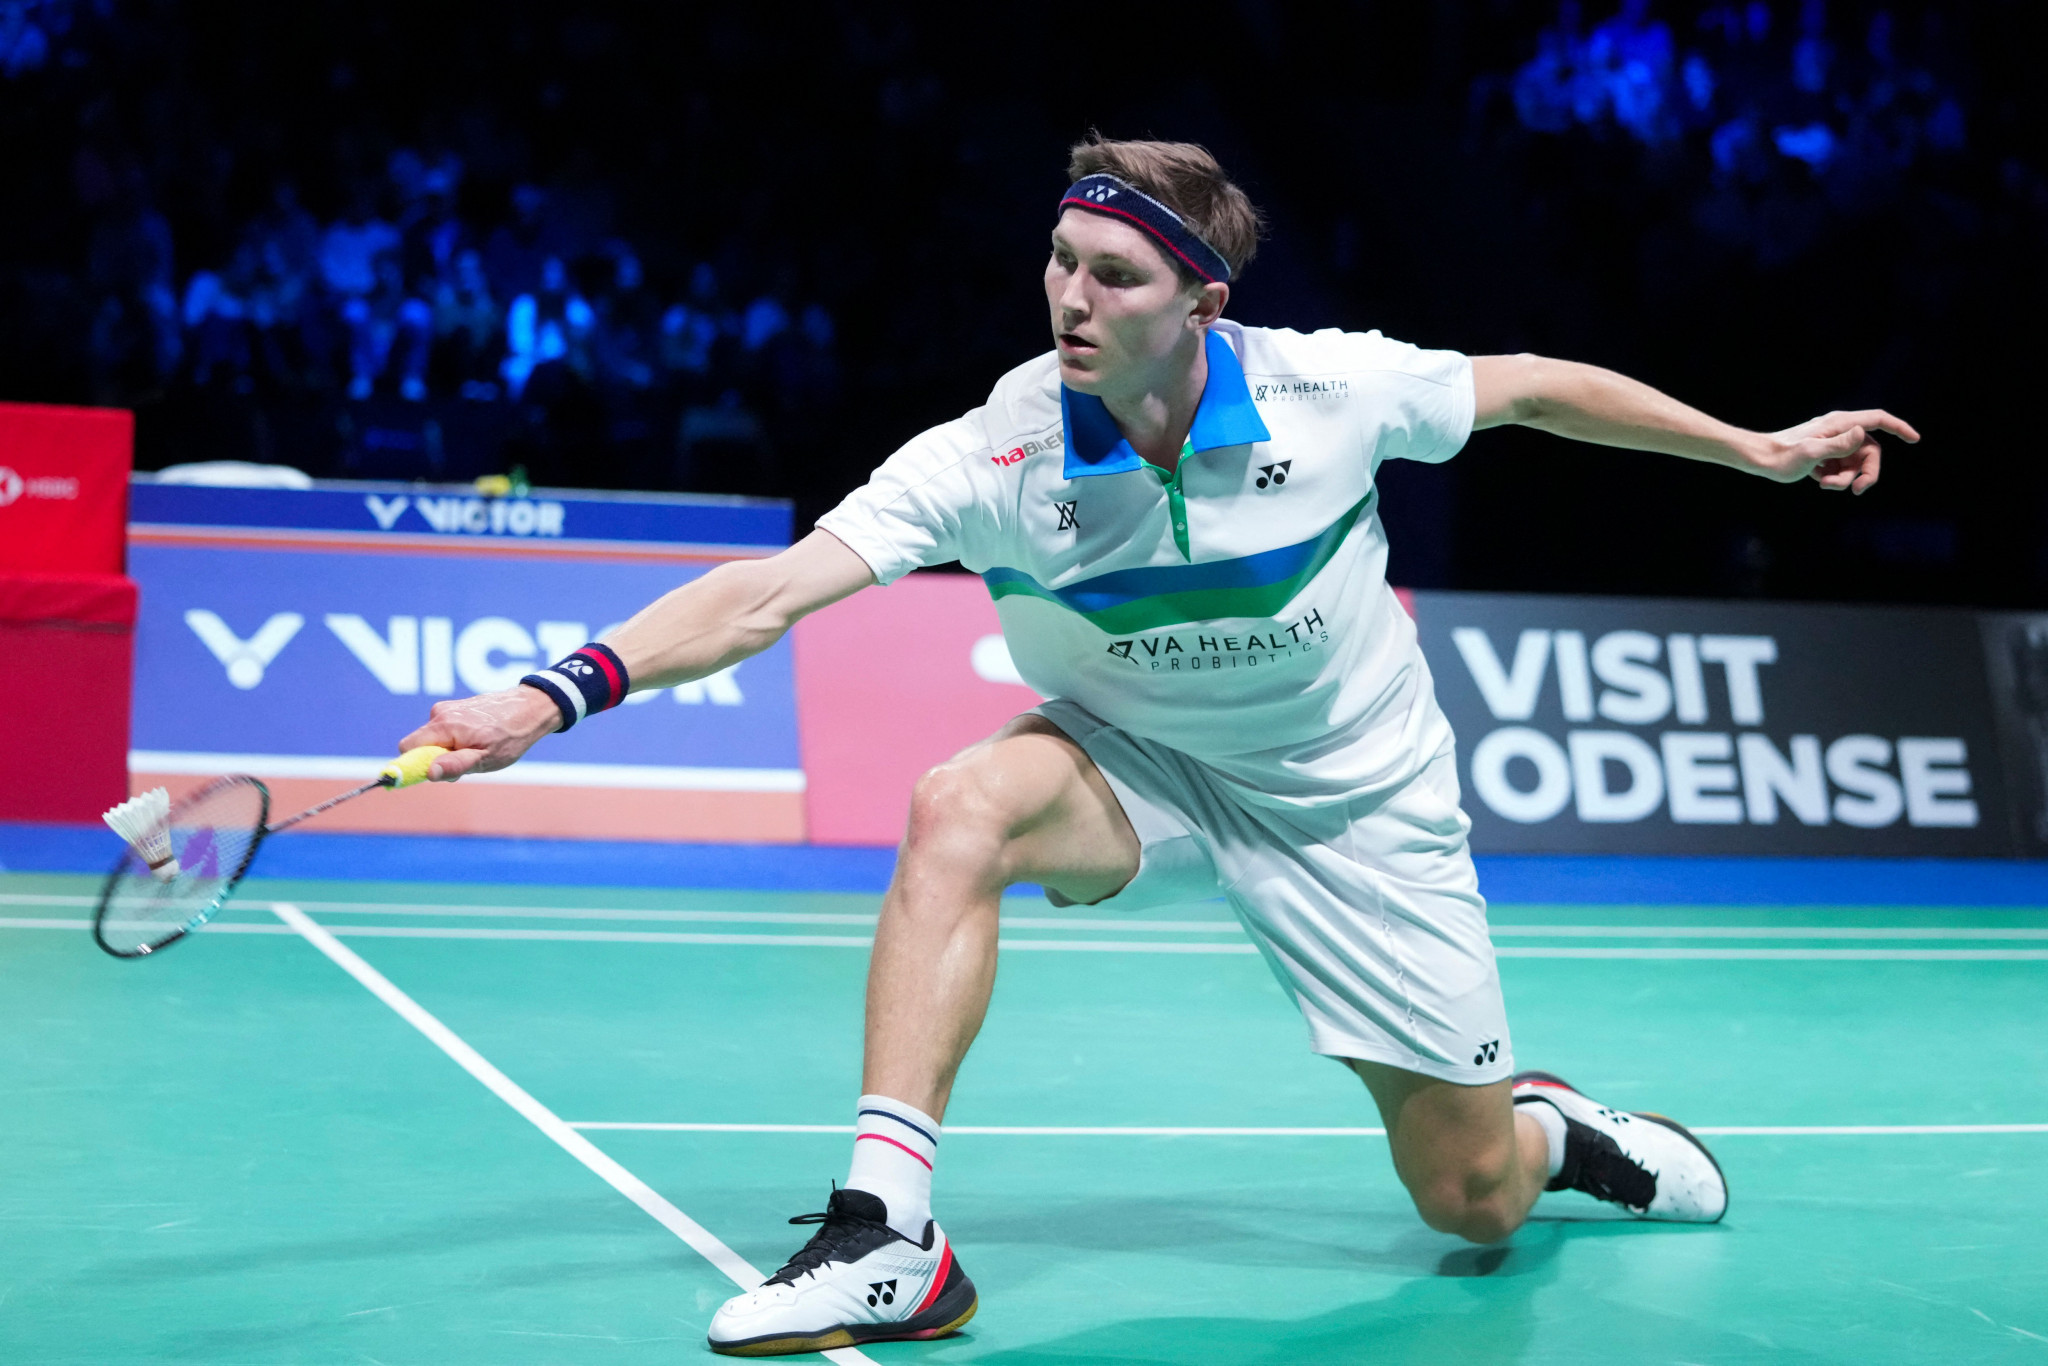 Axelsen rallies to victory while Yamaguchi wins after An retirement in Denmark Open